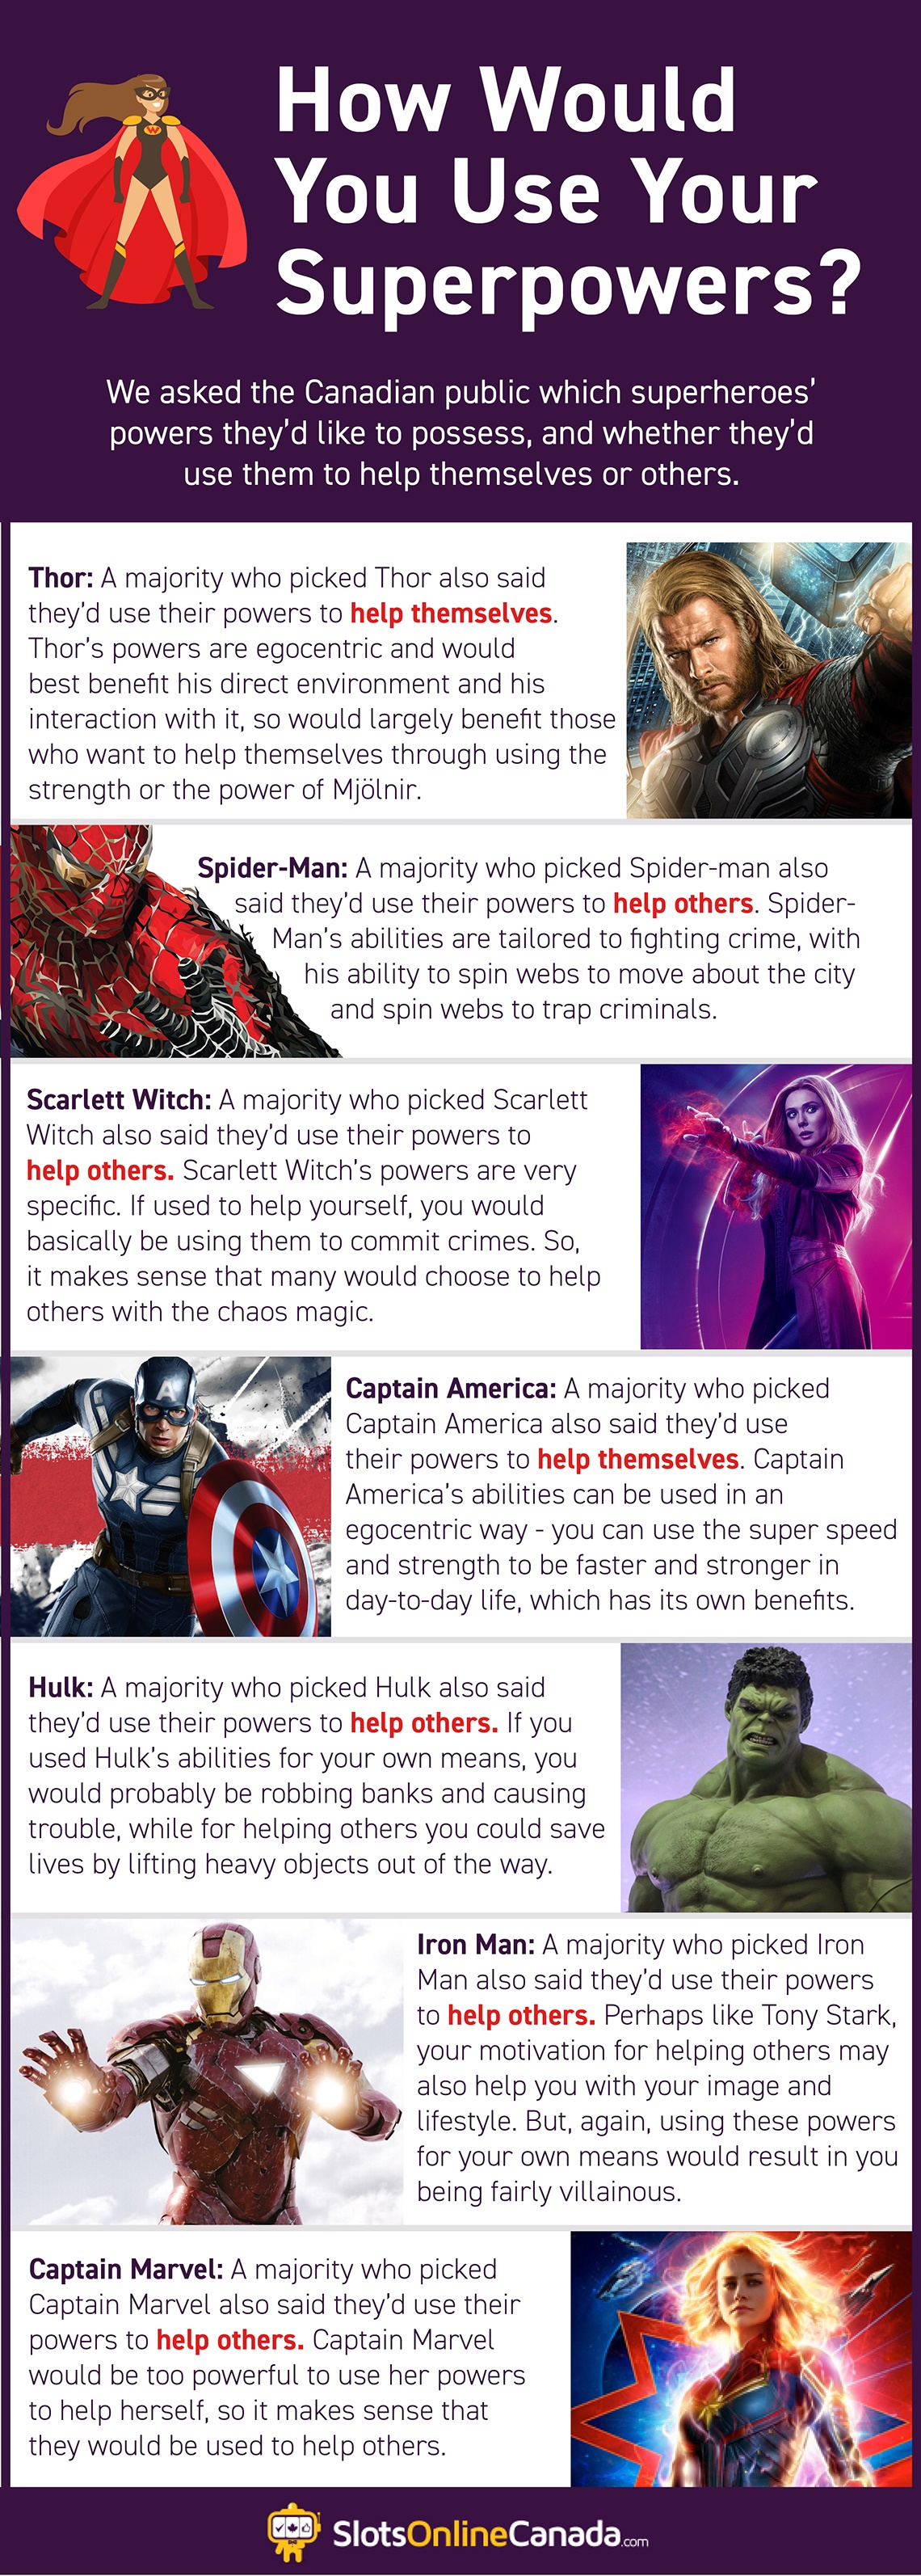 How would you use your superpowers